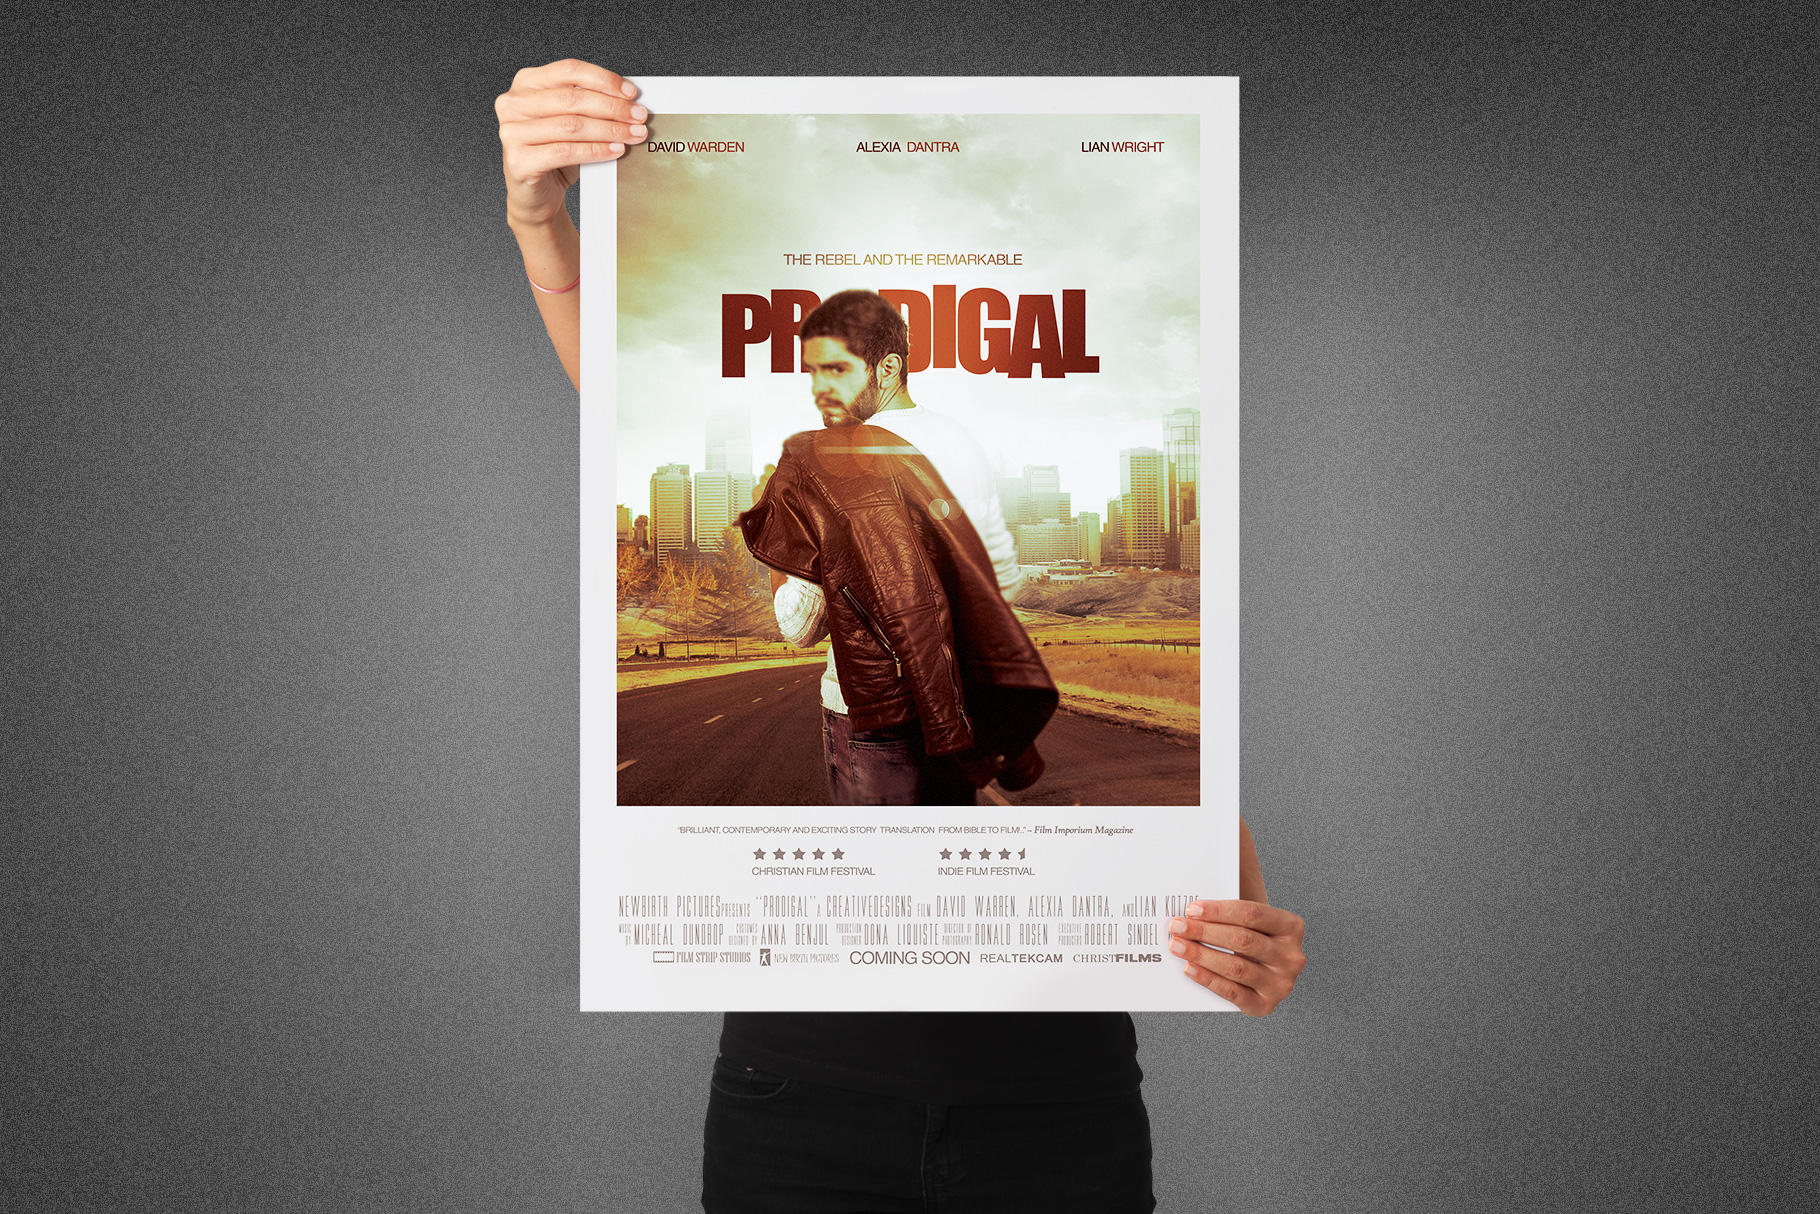 Prodigal Movie Poster Template example image 3